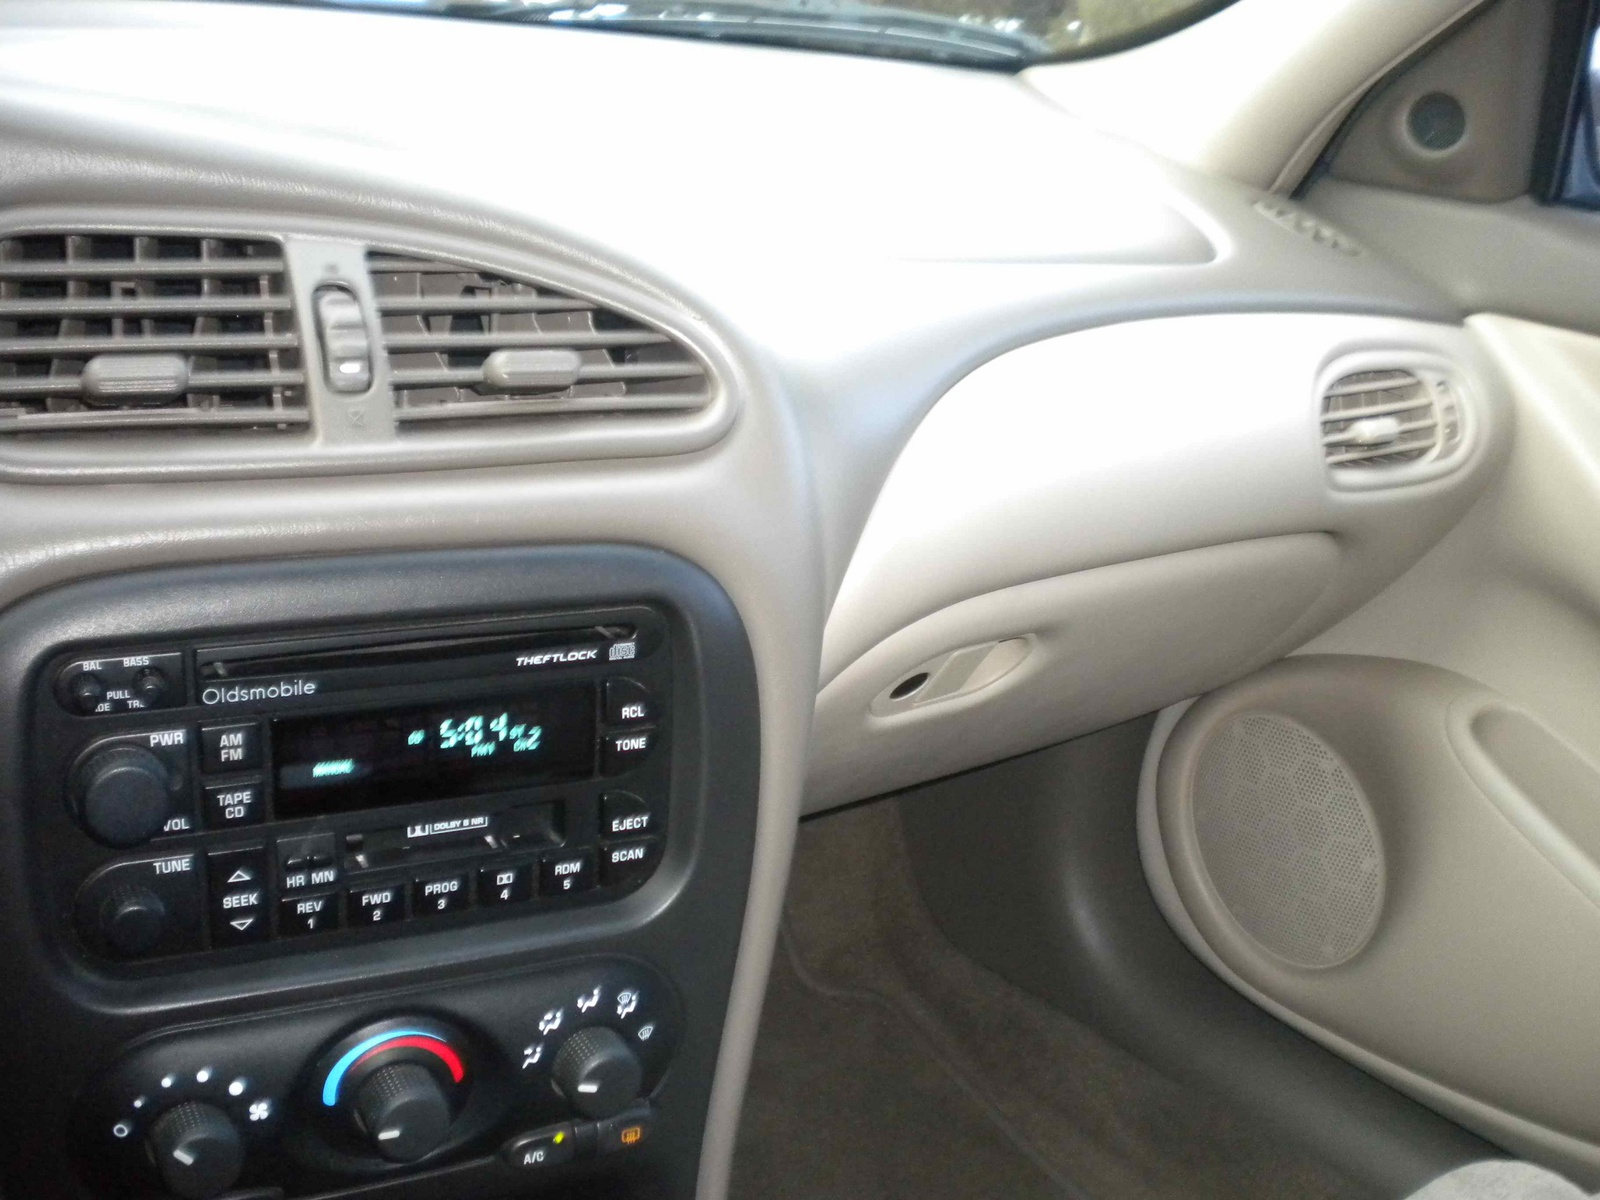 Oldsmobile Alero interior #1